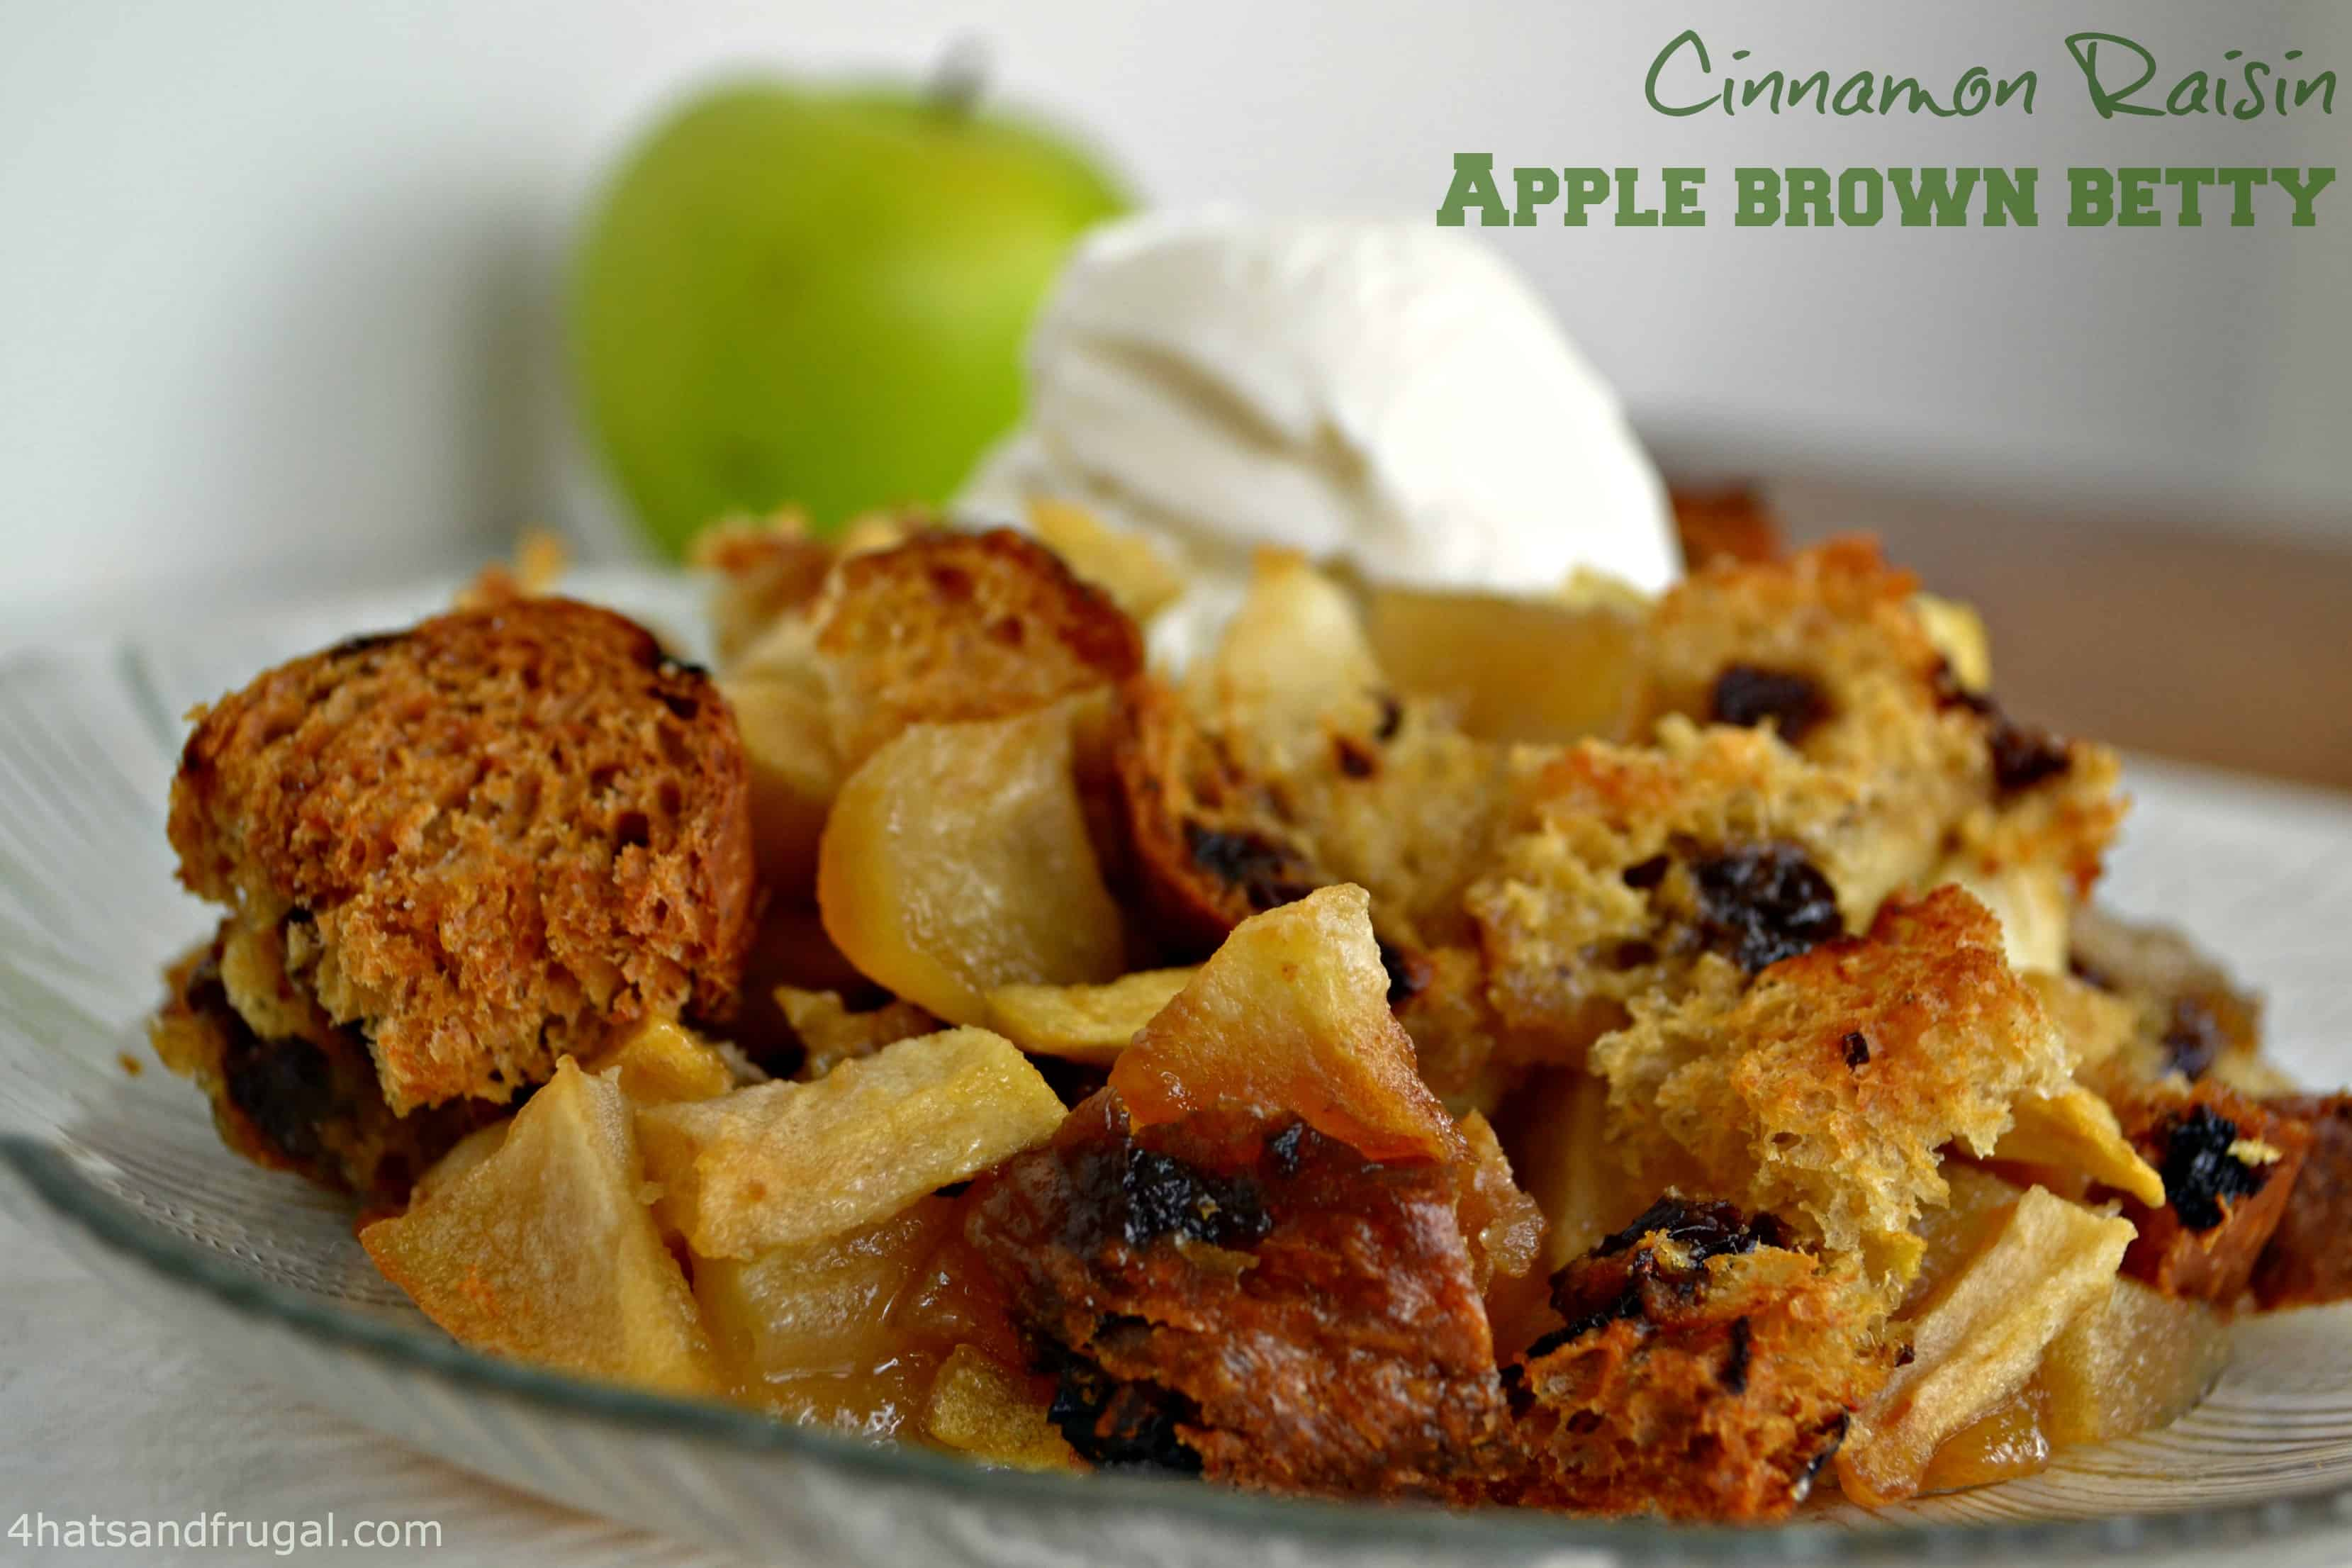 Low Fat Apple Brown Betty - How to Make a Low Fat Apple Brown Betty